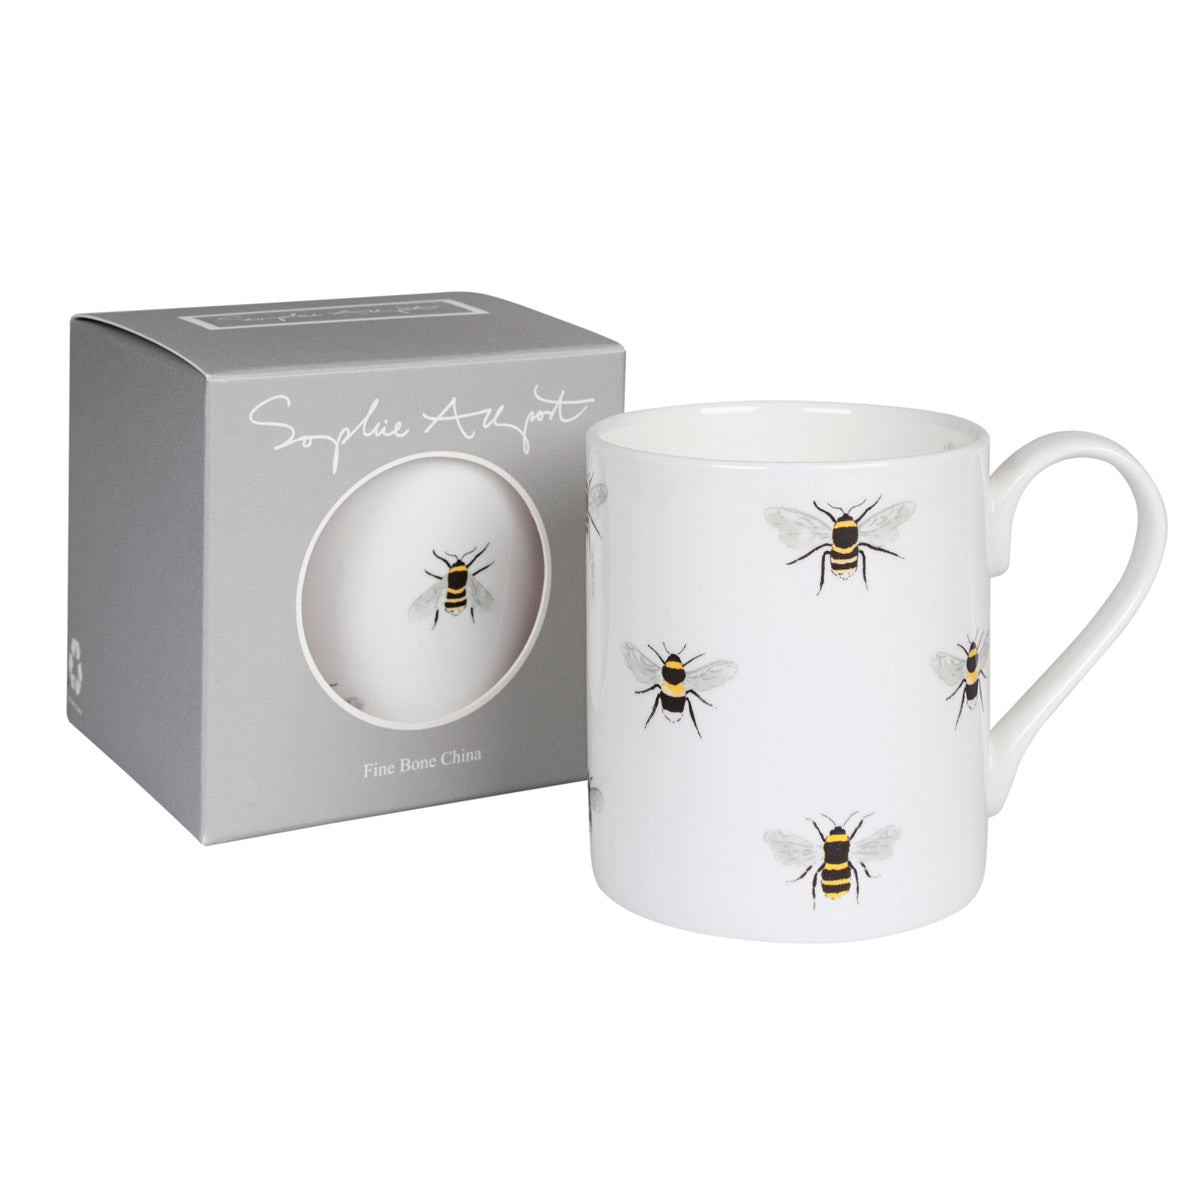 Bee Mug by Sophie Allport with gift box